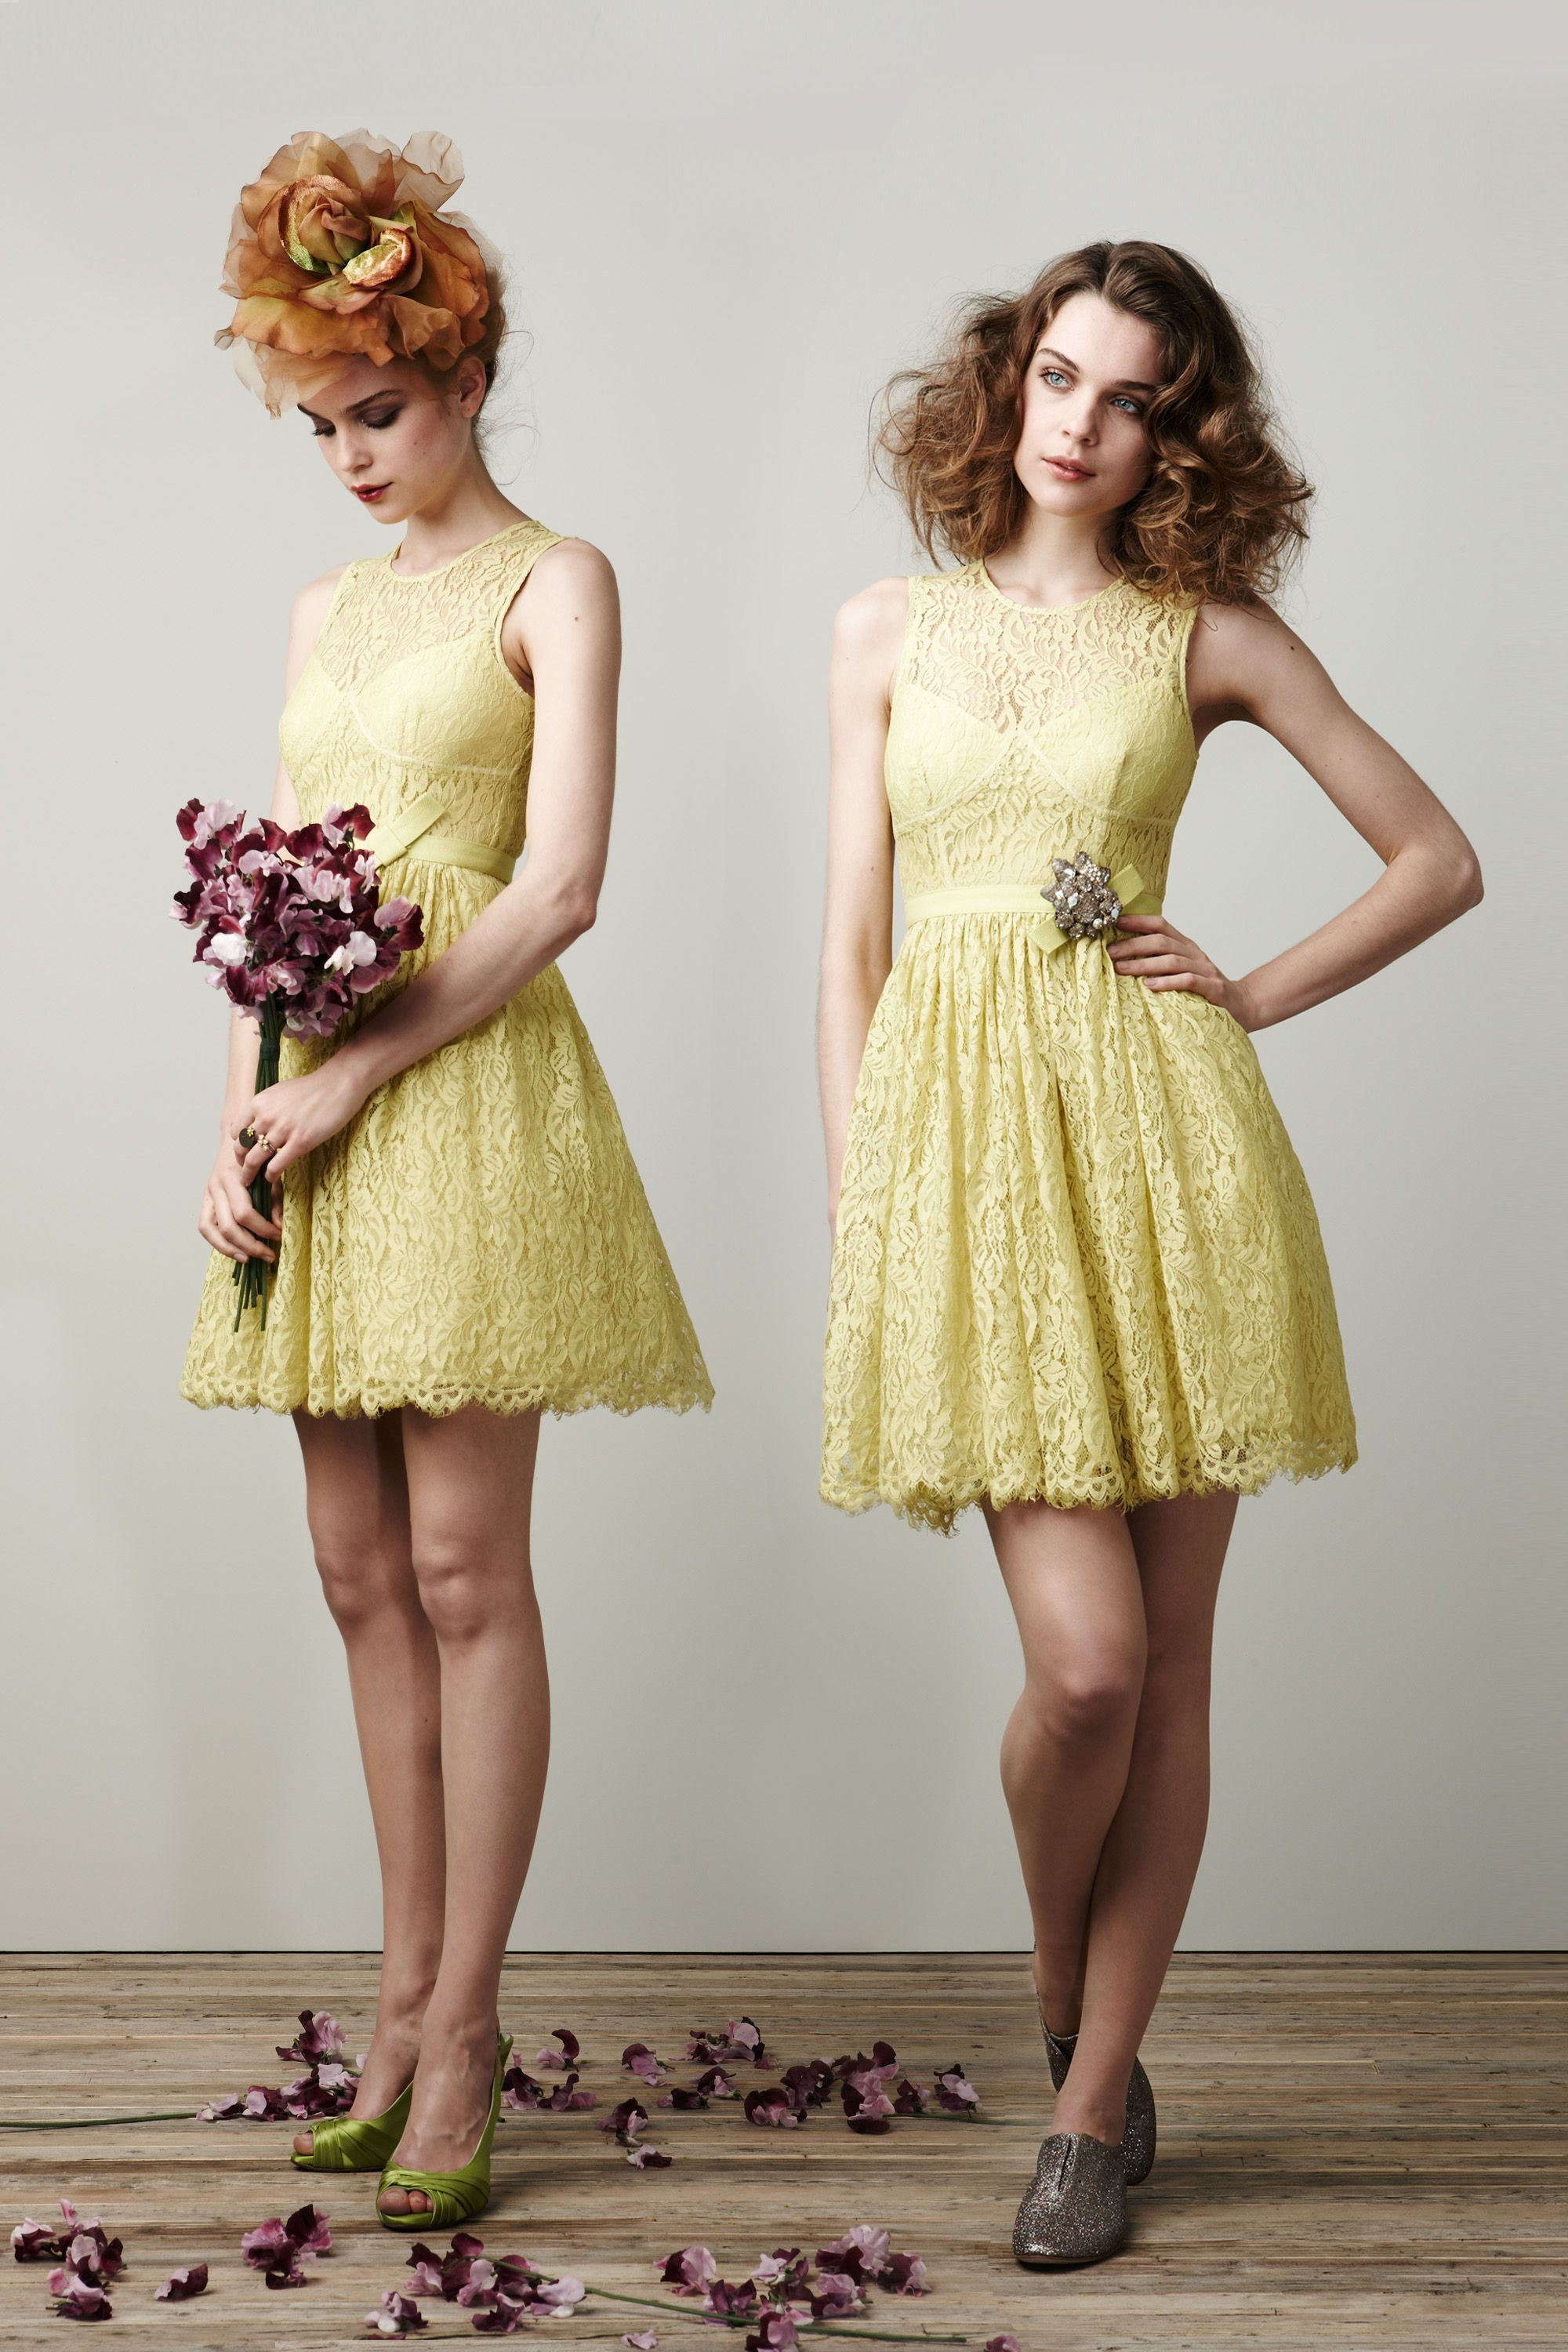 Bridesmaid Dresses Match Lace Wedding Dress : Pale yellow lace bridesmaid dresses onewed